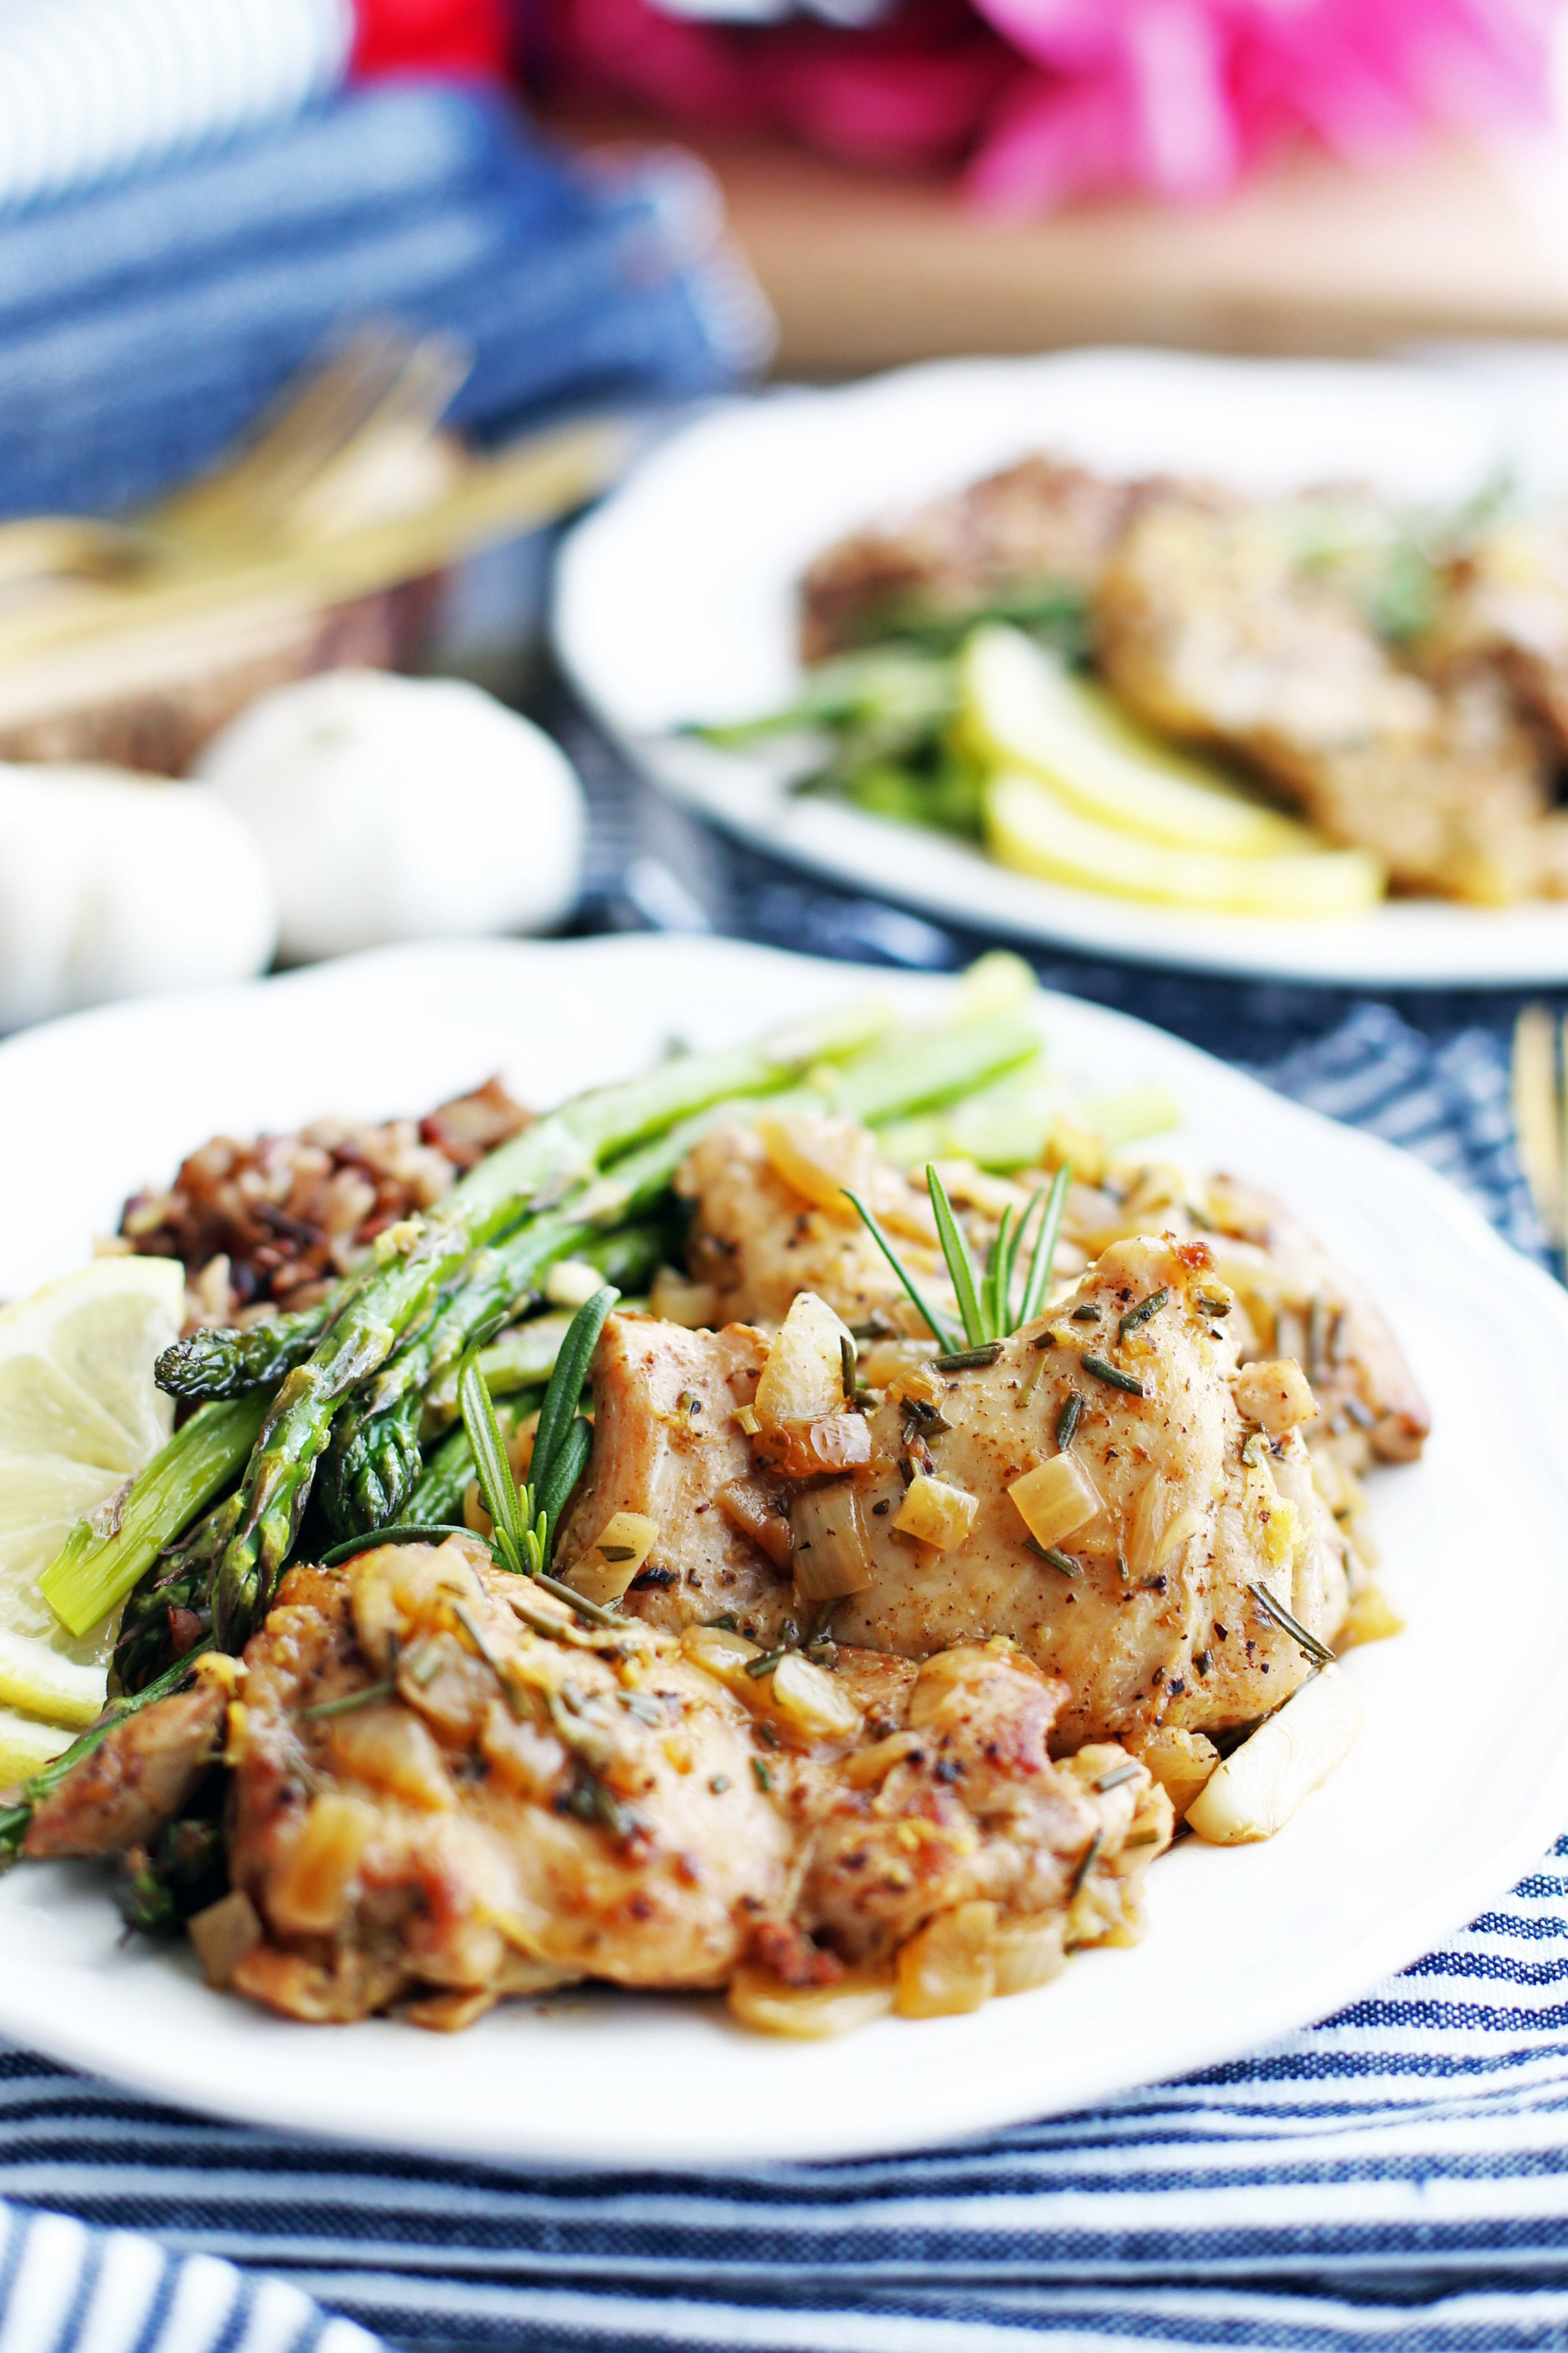 A closeup view of rosemary garlic chicken thighs on a white plate with asparagus and wild rice.